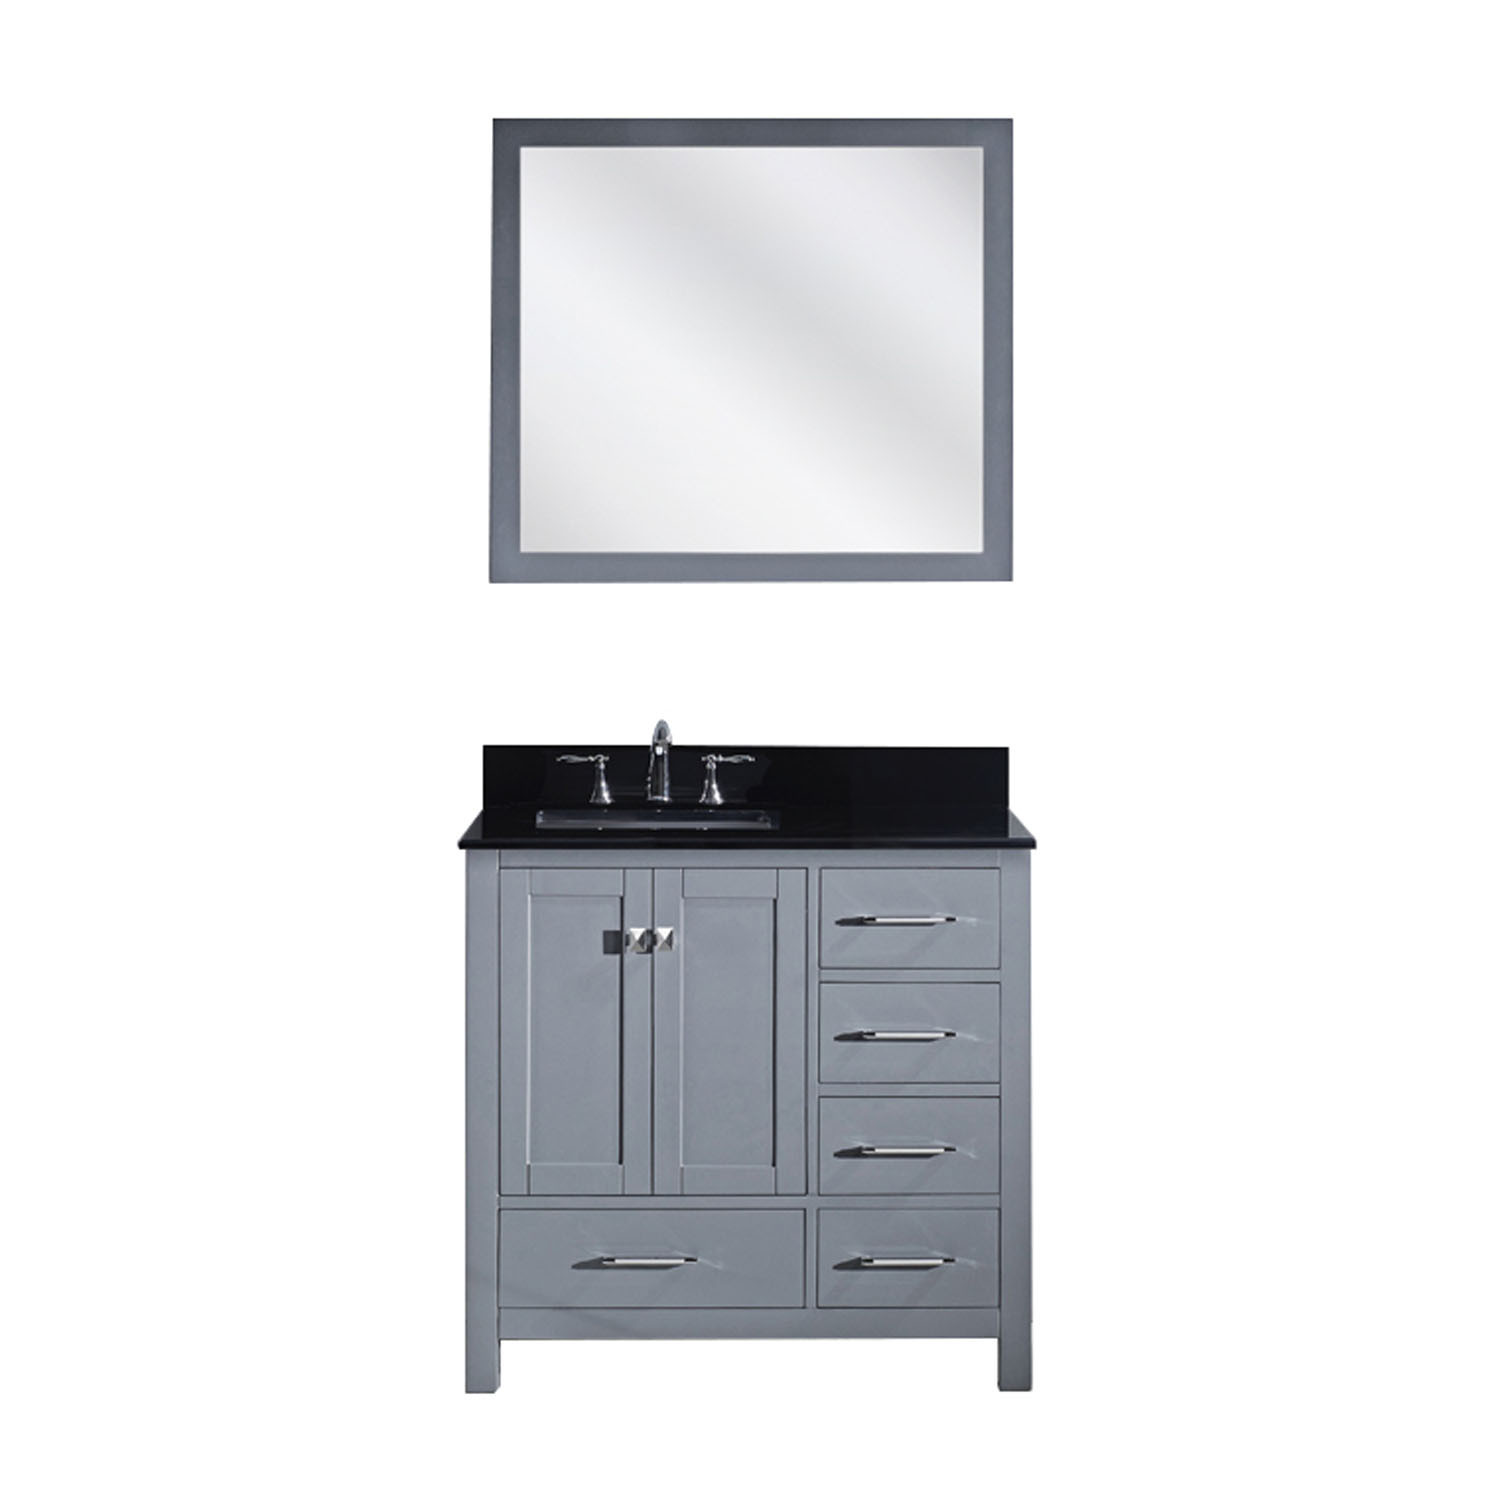 Virtu GS-50036-BGSQ-GR-001 Caroline Avenue 36 Inch Single Bathroom Vanity Set In Grey